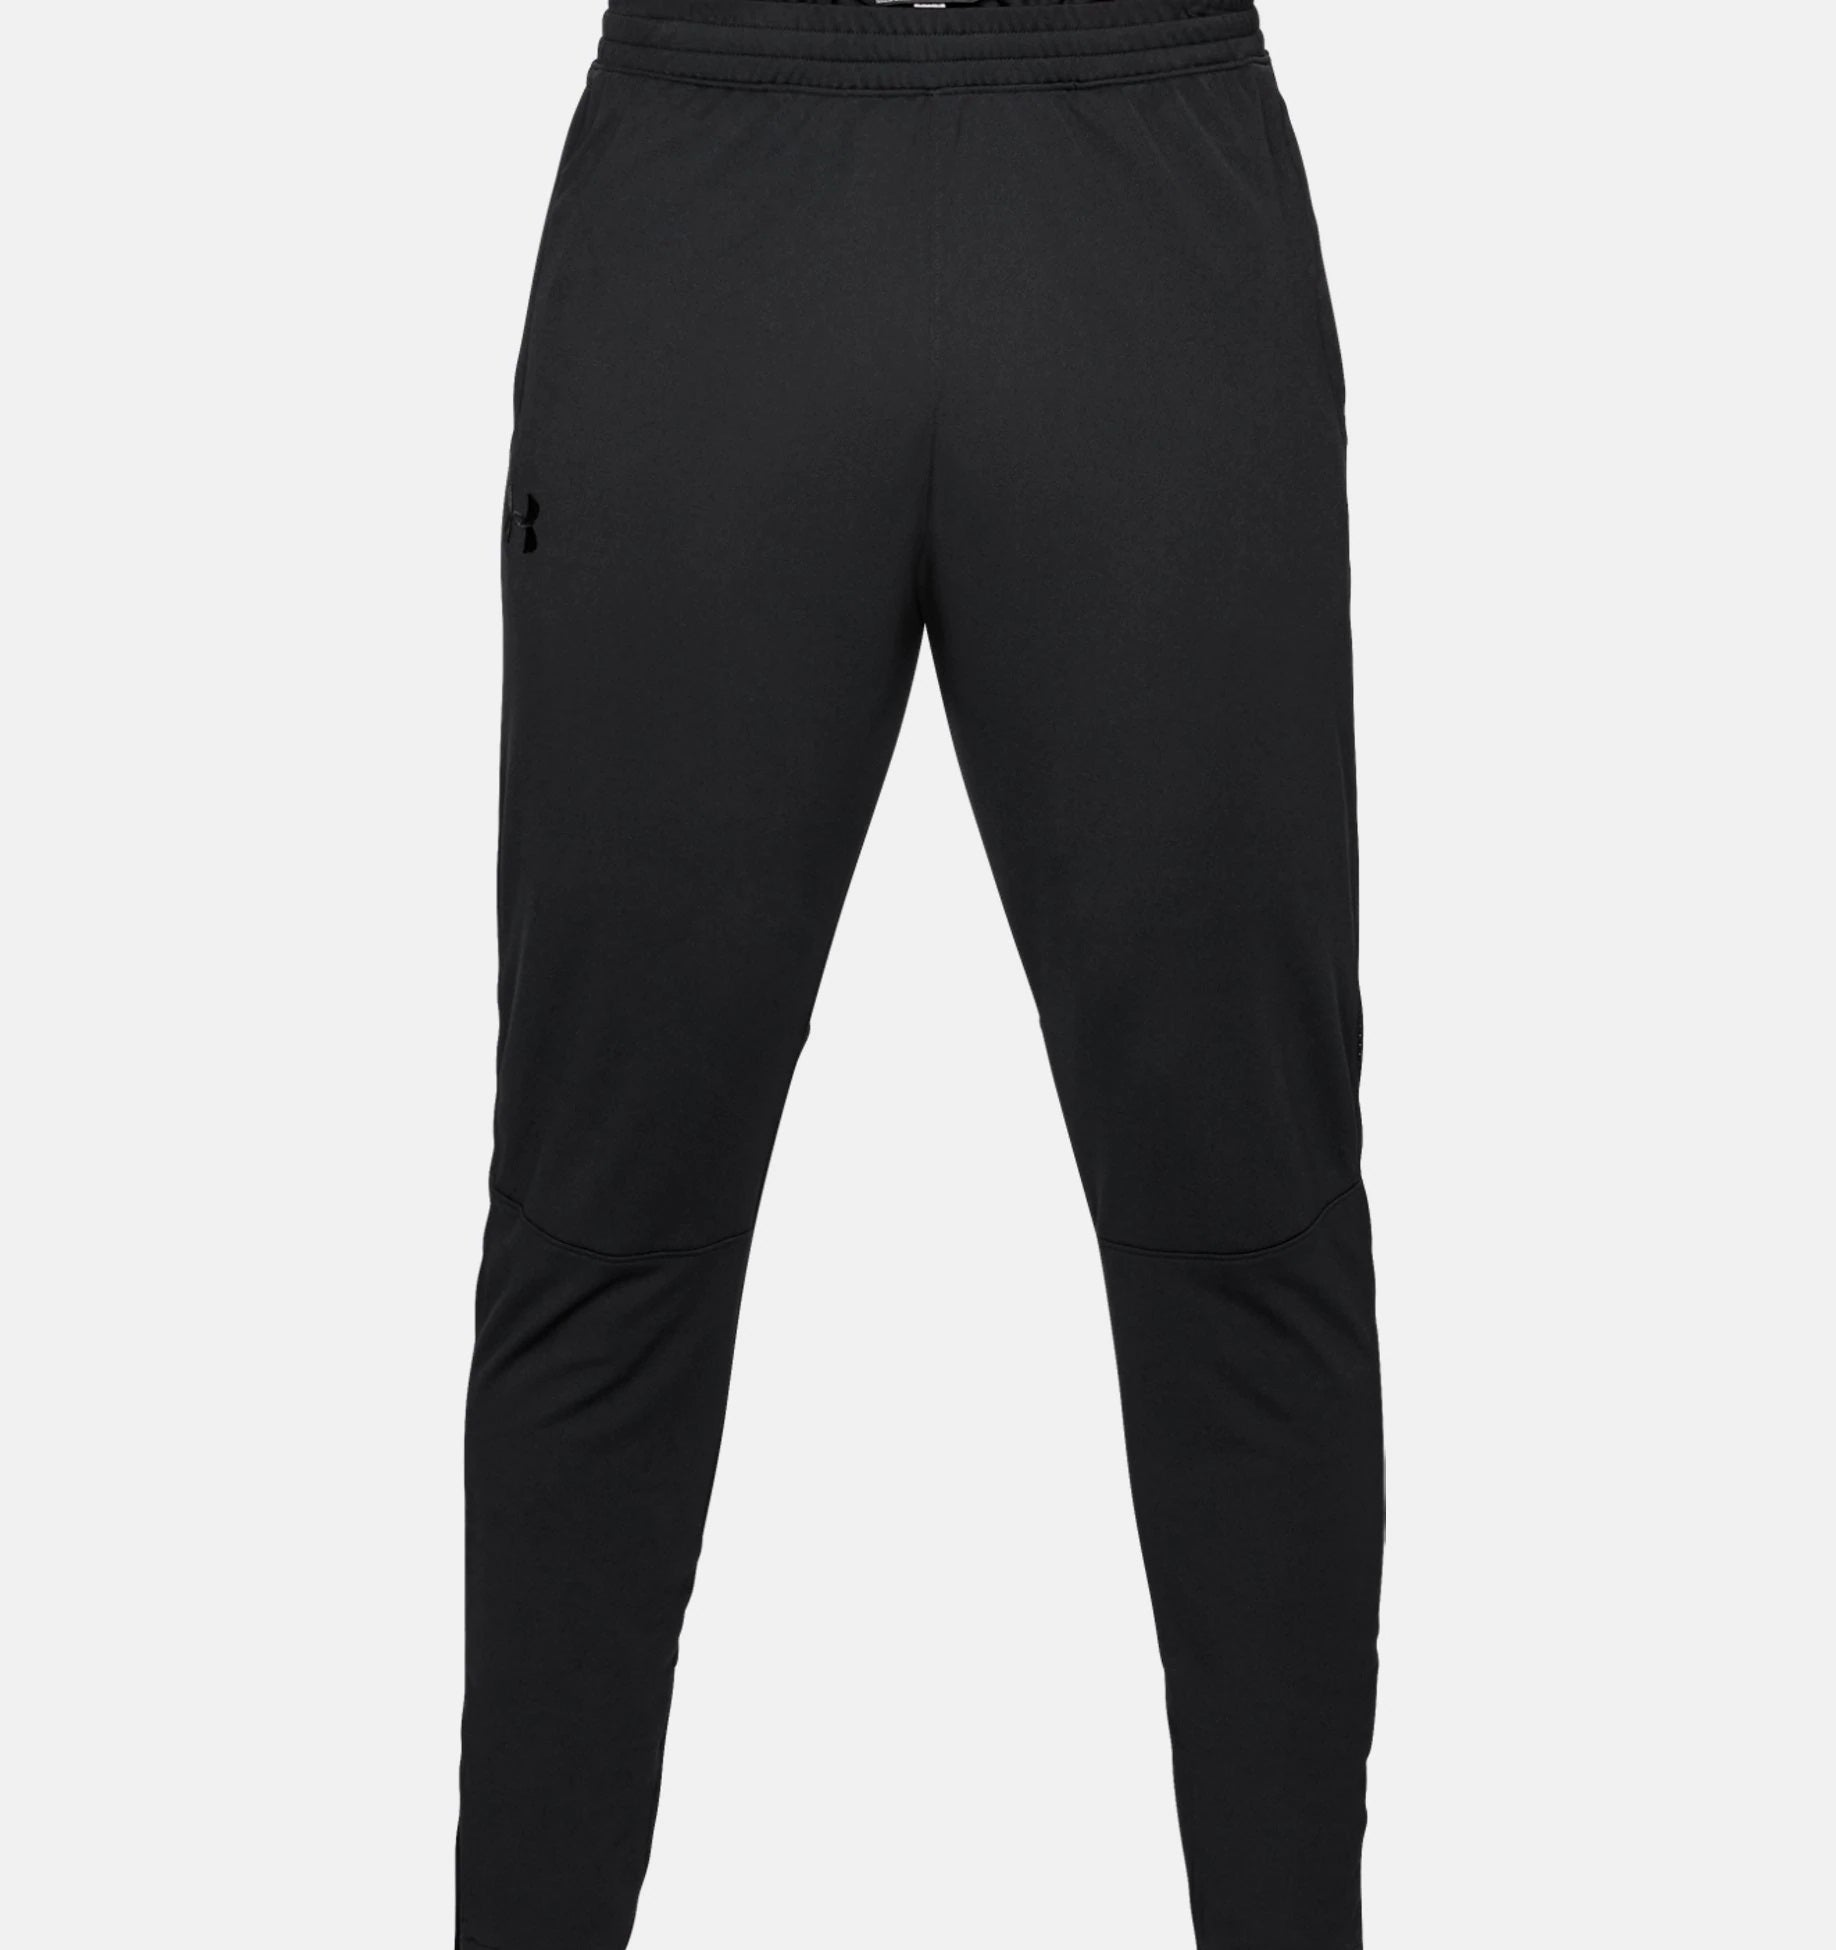 Under Armour Men's Sportstyle Pants